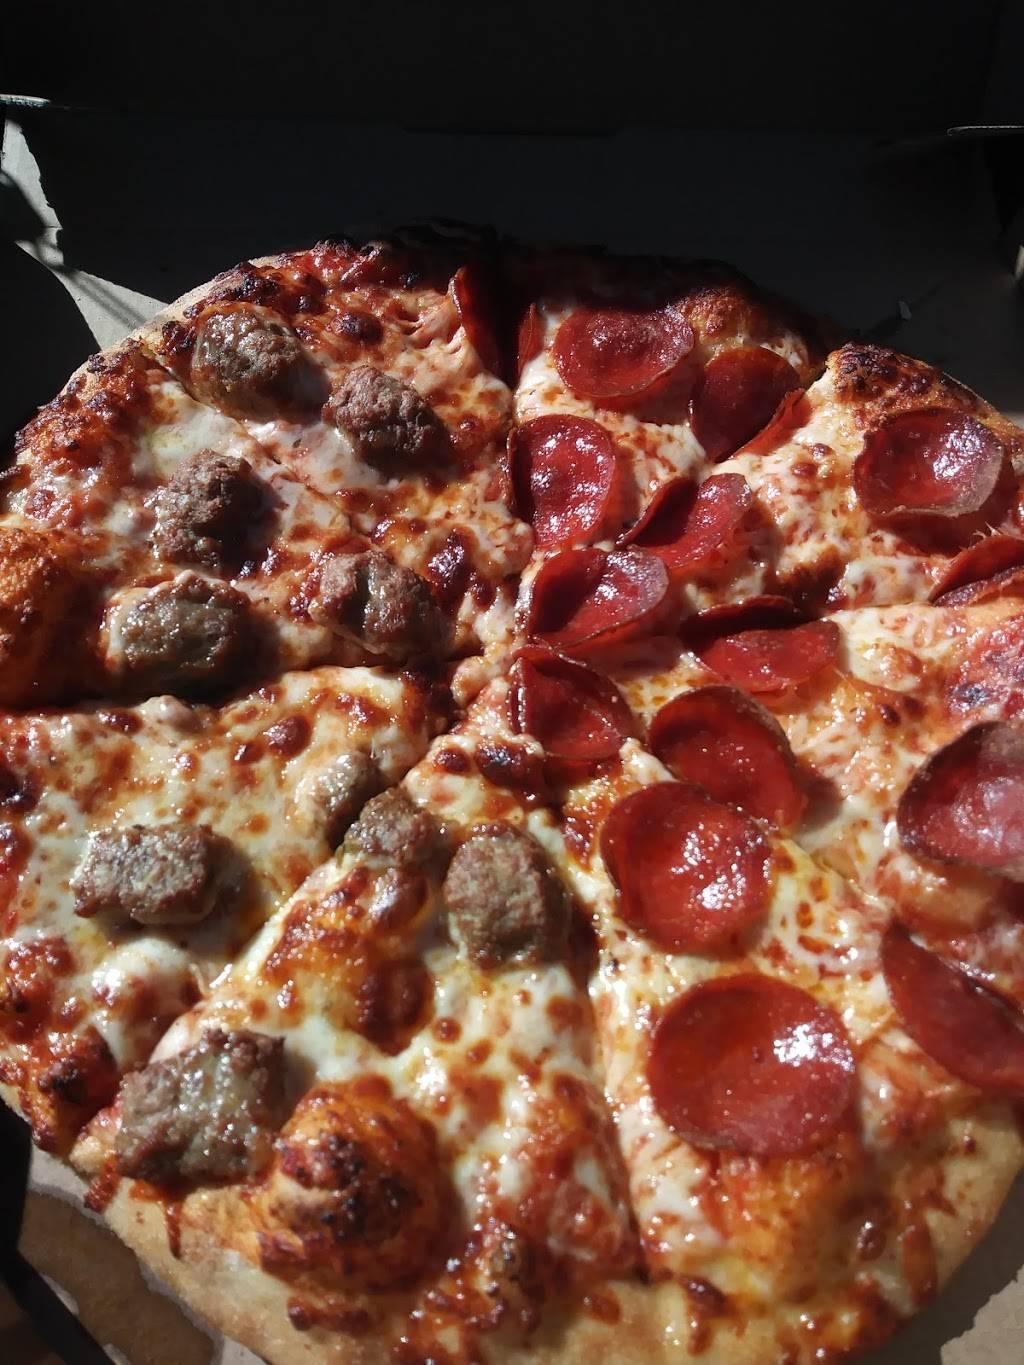 Marcos Pizza | meal delivery | 22099 US Hwy 72 E, Athens, AL 35613, USA | 2568001010 OR +1 256-800-1010